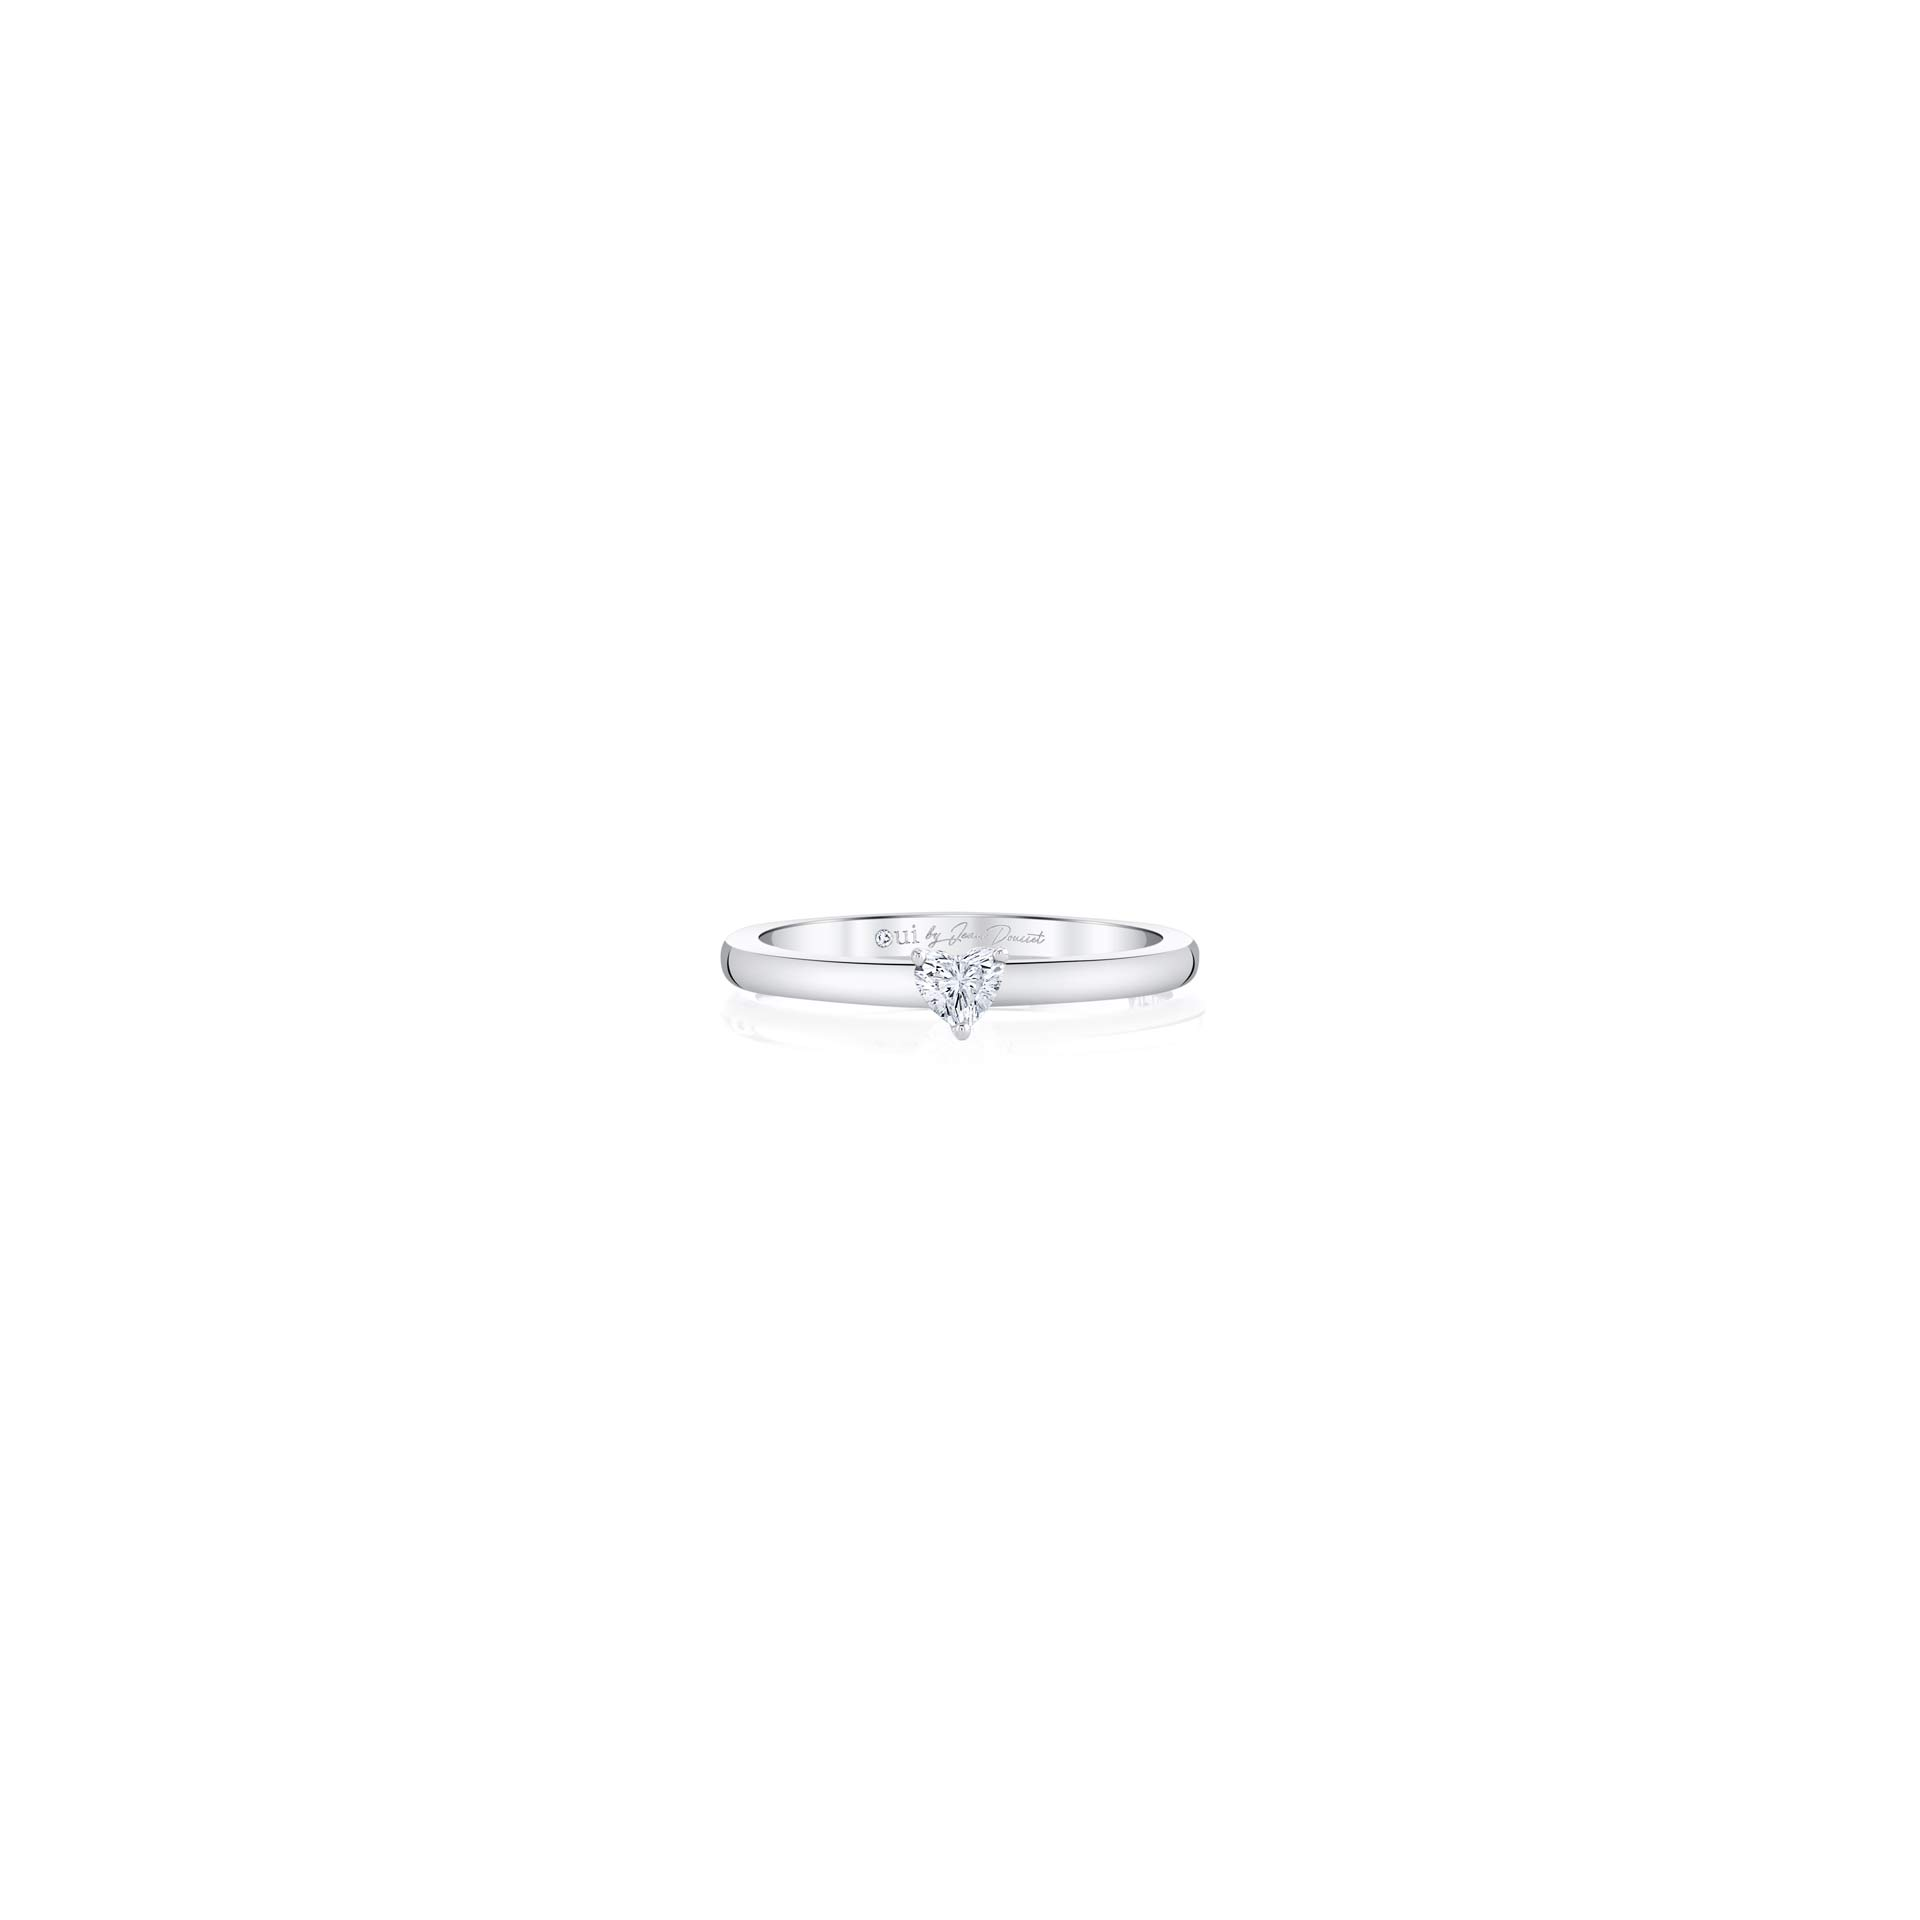 La Petite Heart Diamond Wedding Band in 18k White Gold Front View by Oui by Jean Dousset